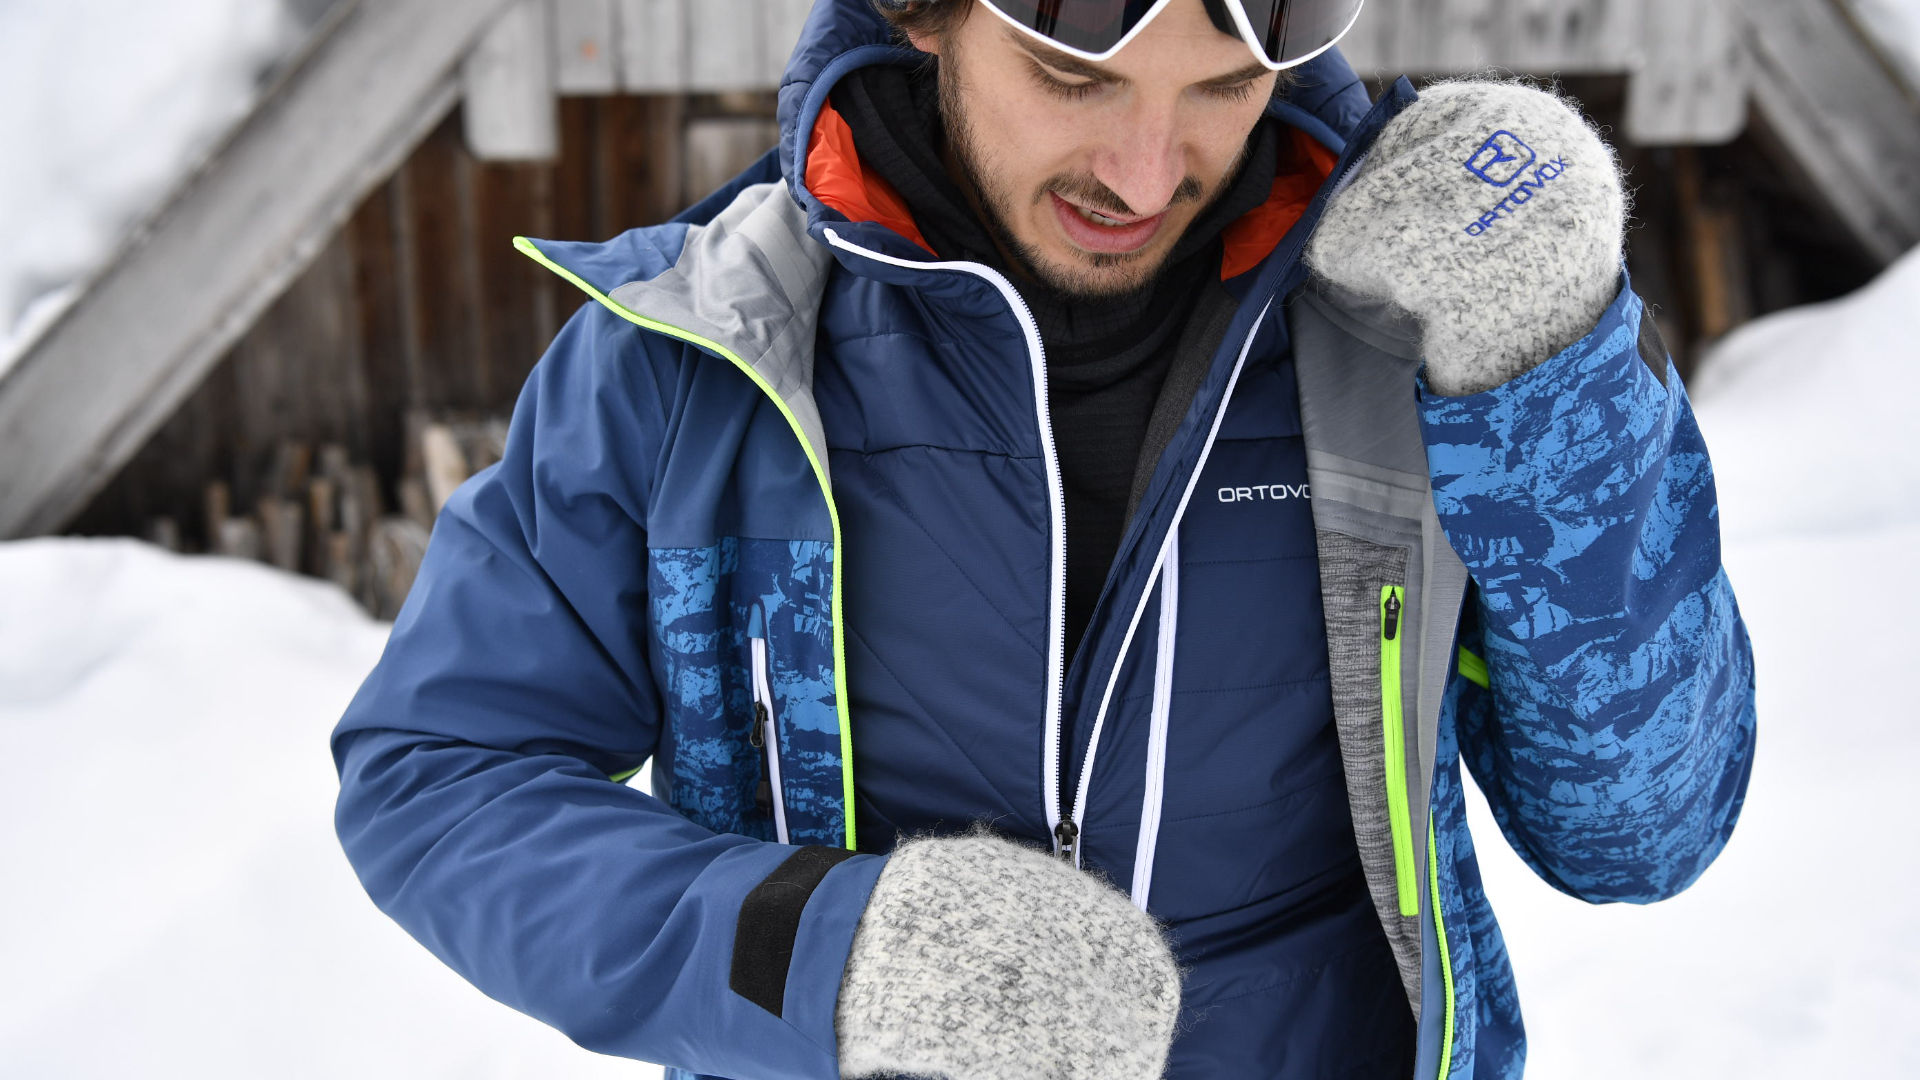 Male snowboarder using an insulator and jacket from Ortovox to keep warm